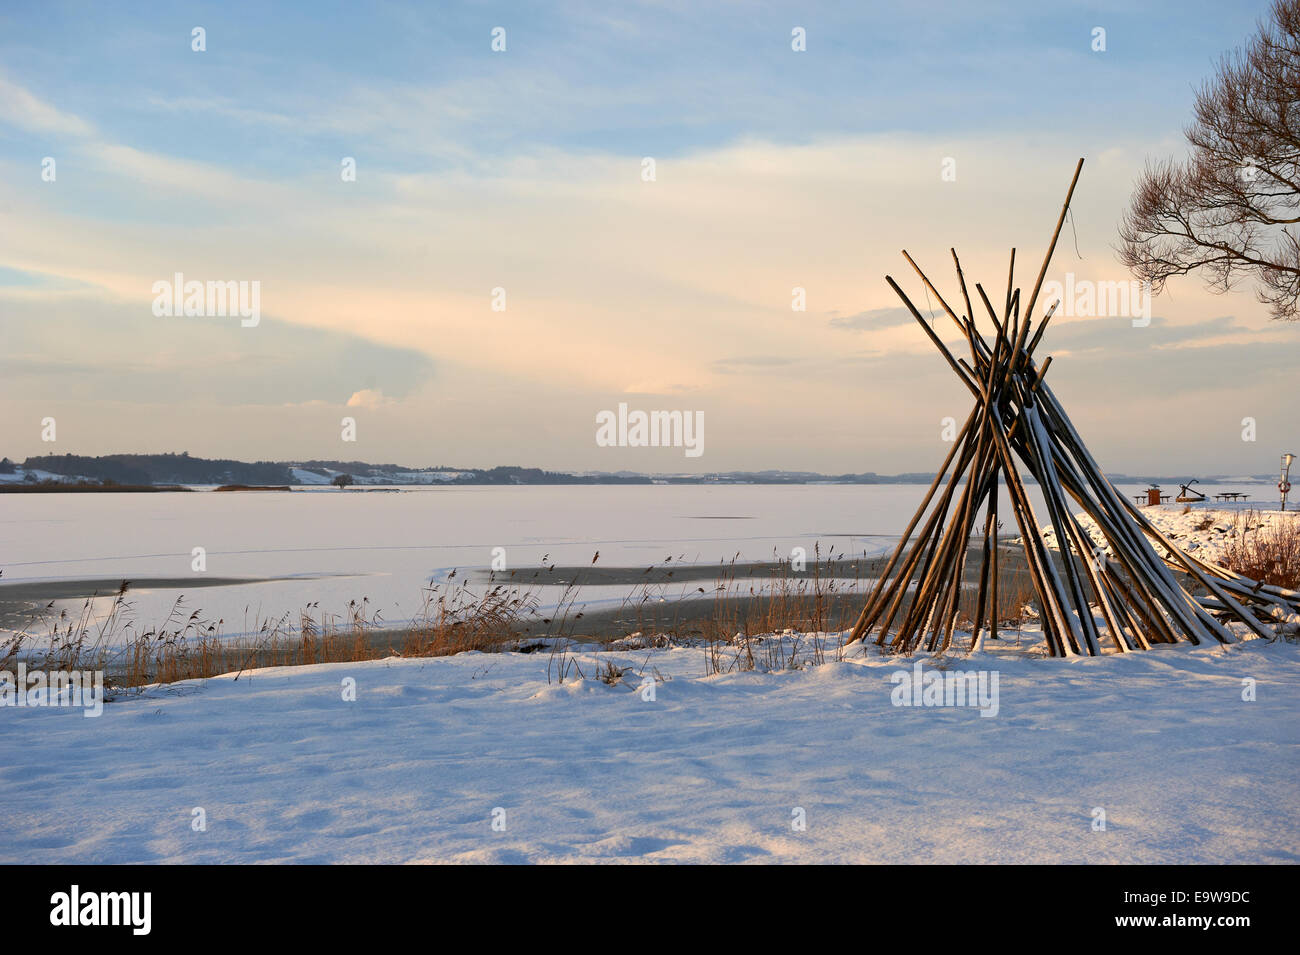 Winter view of frozen fjord - Stock Image